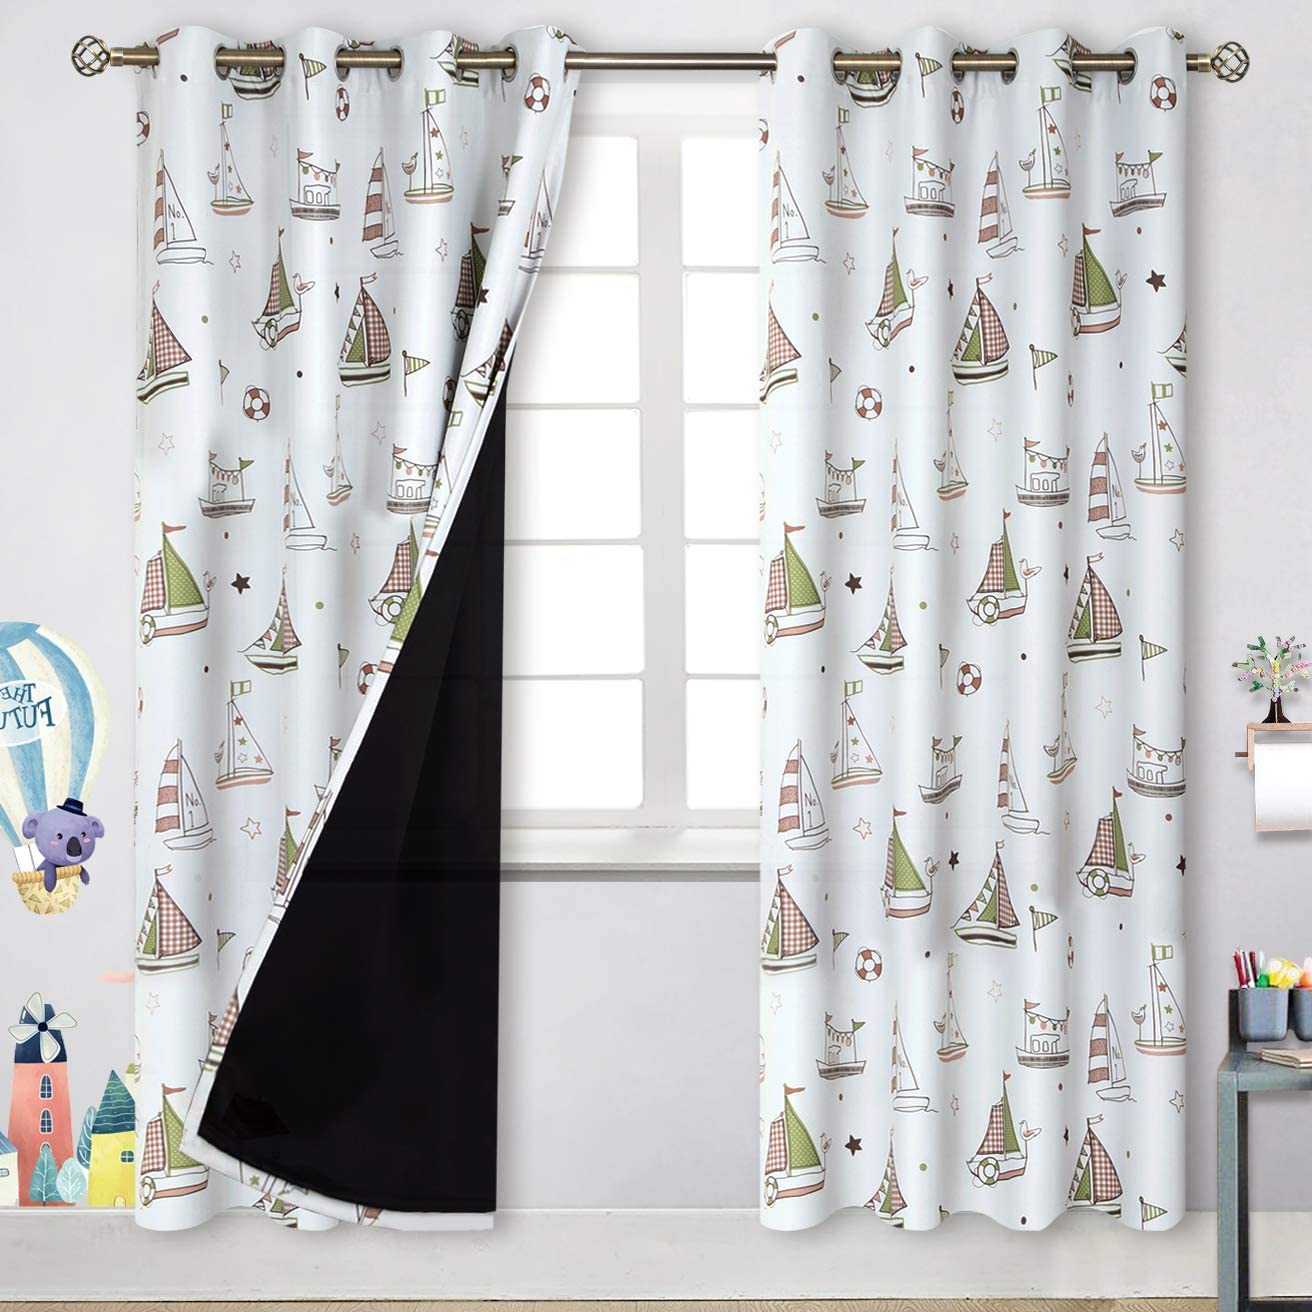 BGment 100 Blackout Curtains for Kids Bedroom with Black Liner, 2 Layers Thermal Insulated Lined Noise Reducing Grommet Curtains, White Base with Pink and Green Sail Boats, 52 X 84 inch, 2 Panels